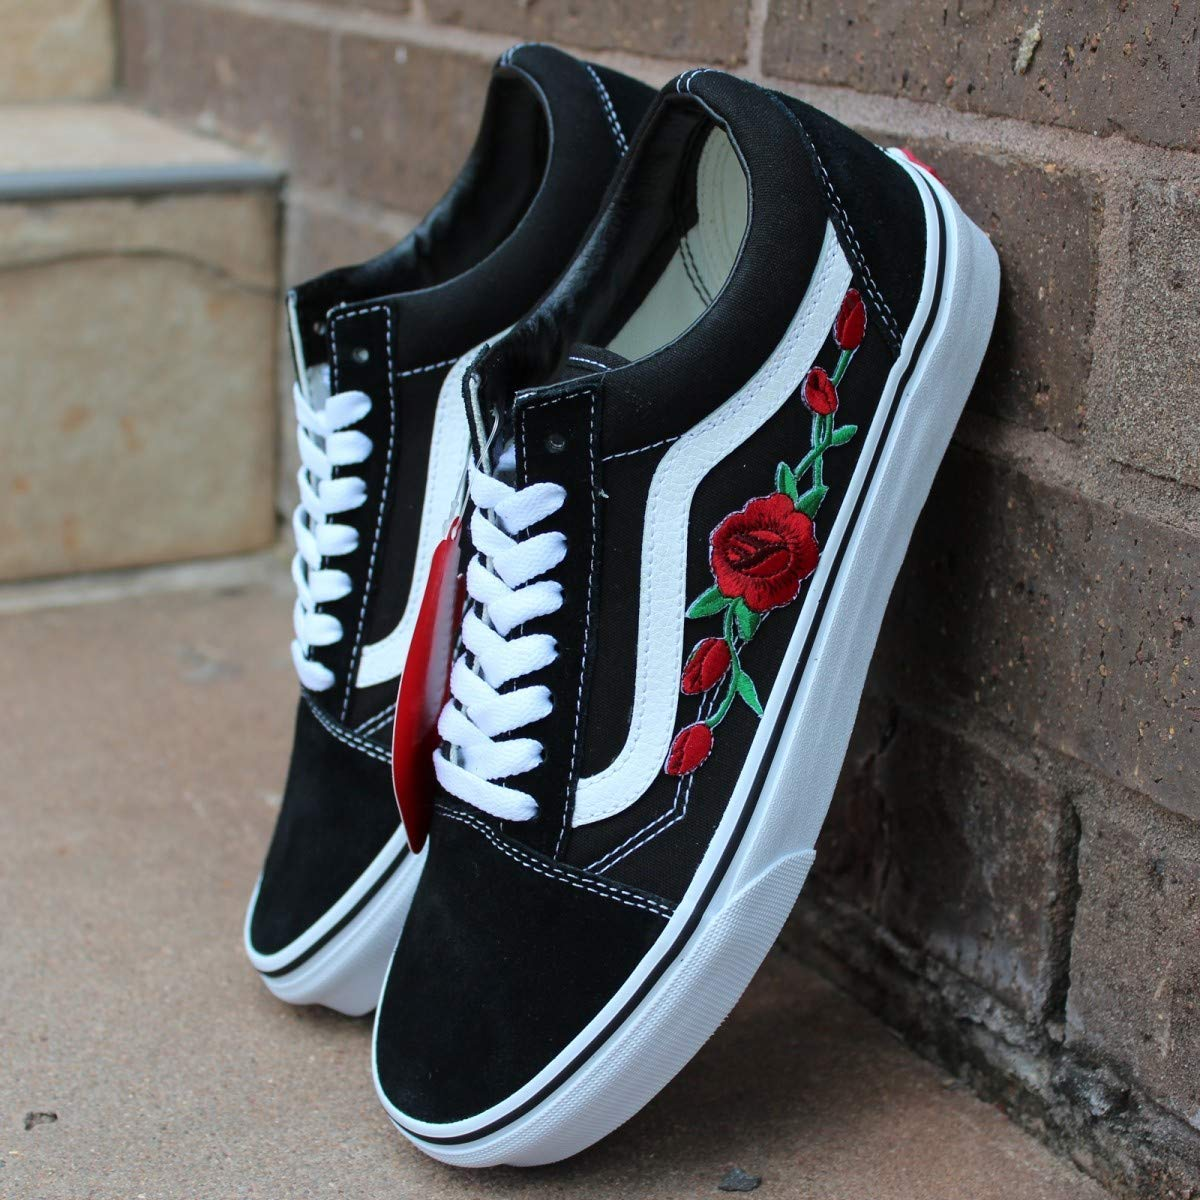 Black Old Skool Embroidered Red Rose Custom Handmade Shoes By Patch Collection